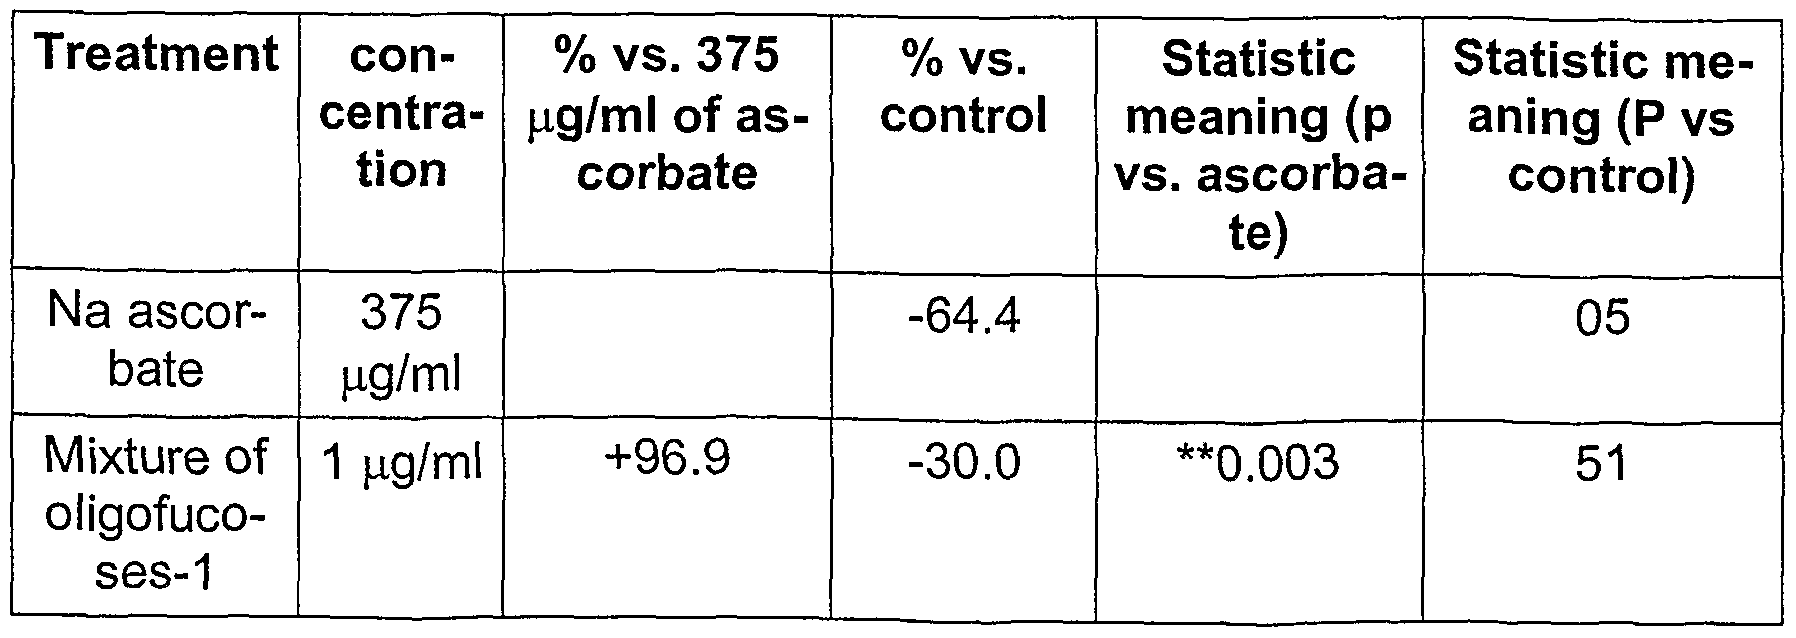 effect of different concentrations of vitamin c Preparing vitamin c solution of different concentrations since the source of vitamin c used is the vitamin c tablet, the best method chosen is the serial dilation method during trial, concentrations tested are 100%, 75%, 50%, 25%, 10% and 0.